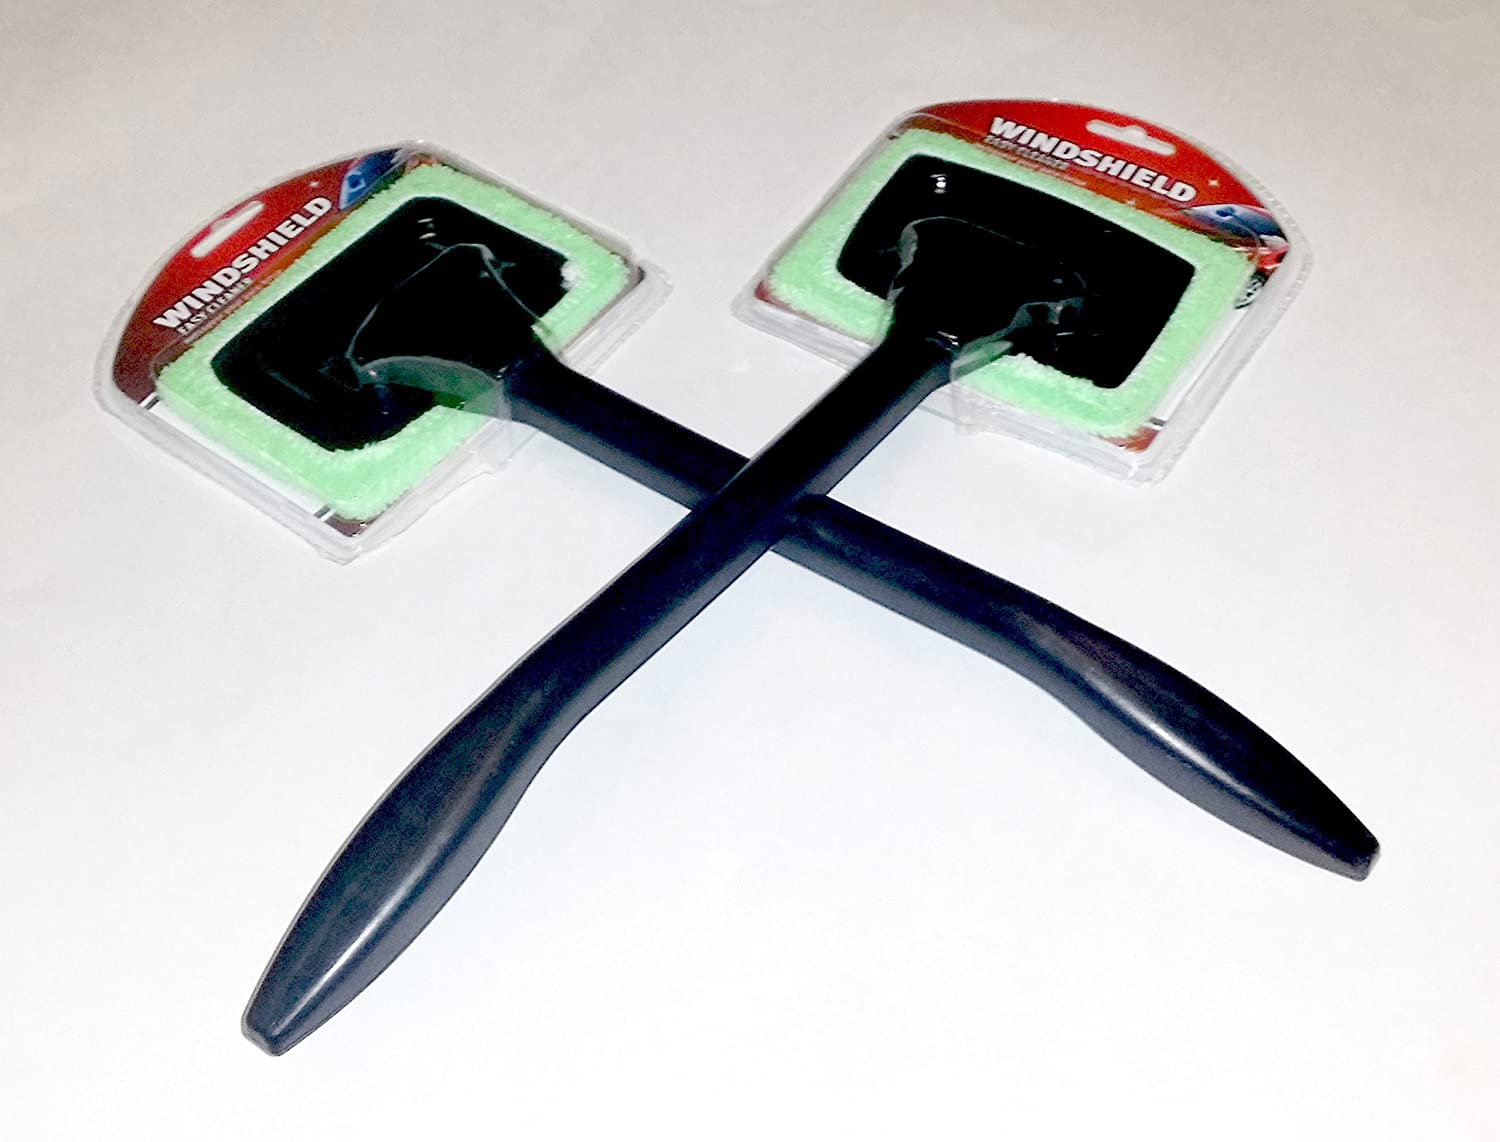 2 Microfiber Easy Windshield Cleaner Wands for your cars' windshields Kole Imports GM281